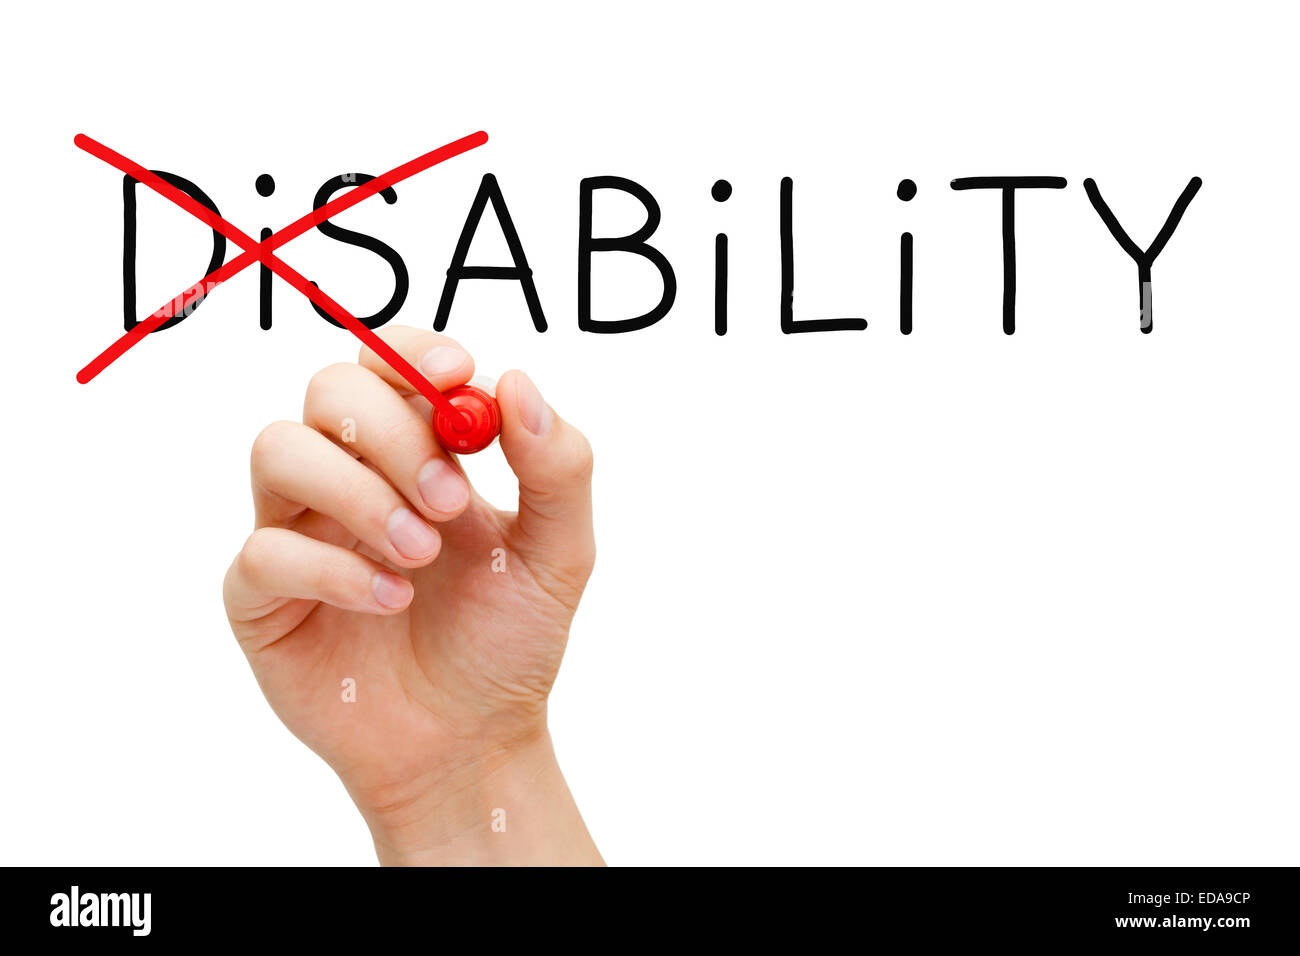 Hand turning the word Disability into Ability with red marker isolated on white. - Stock Image